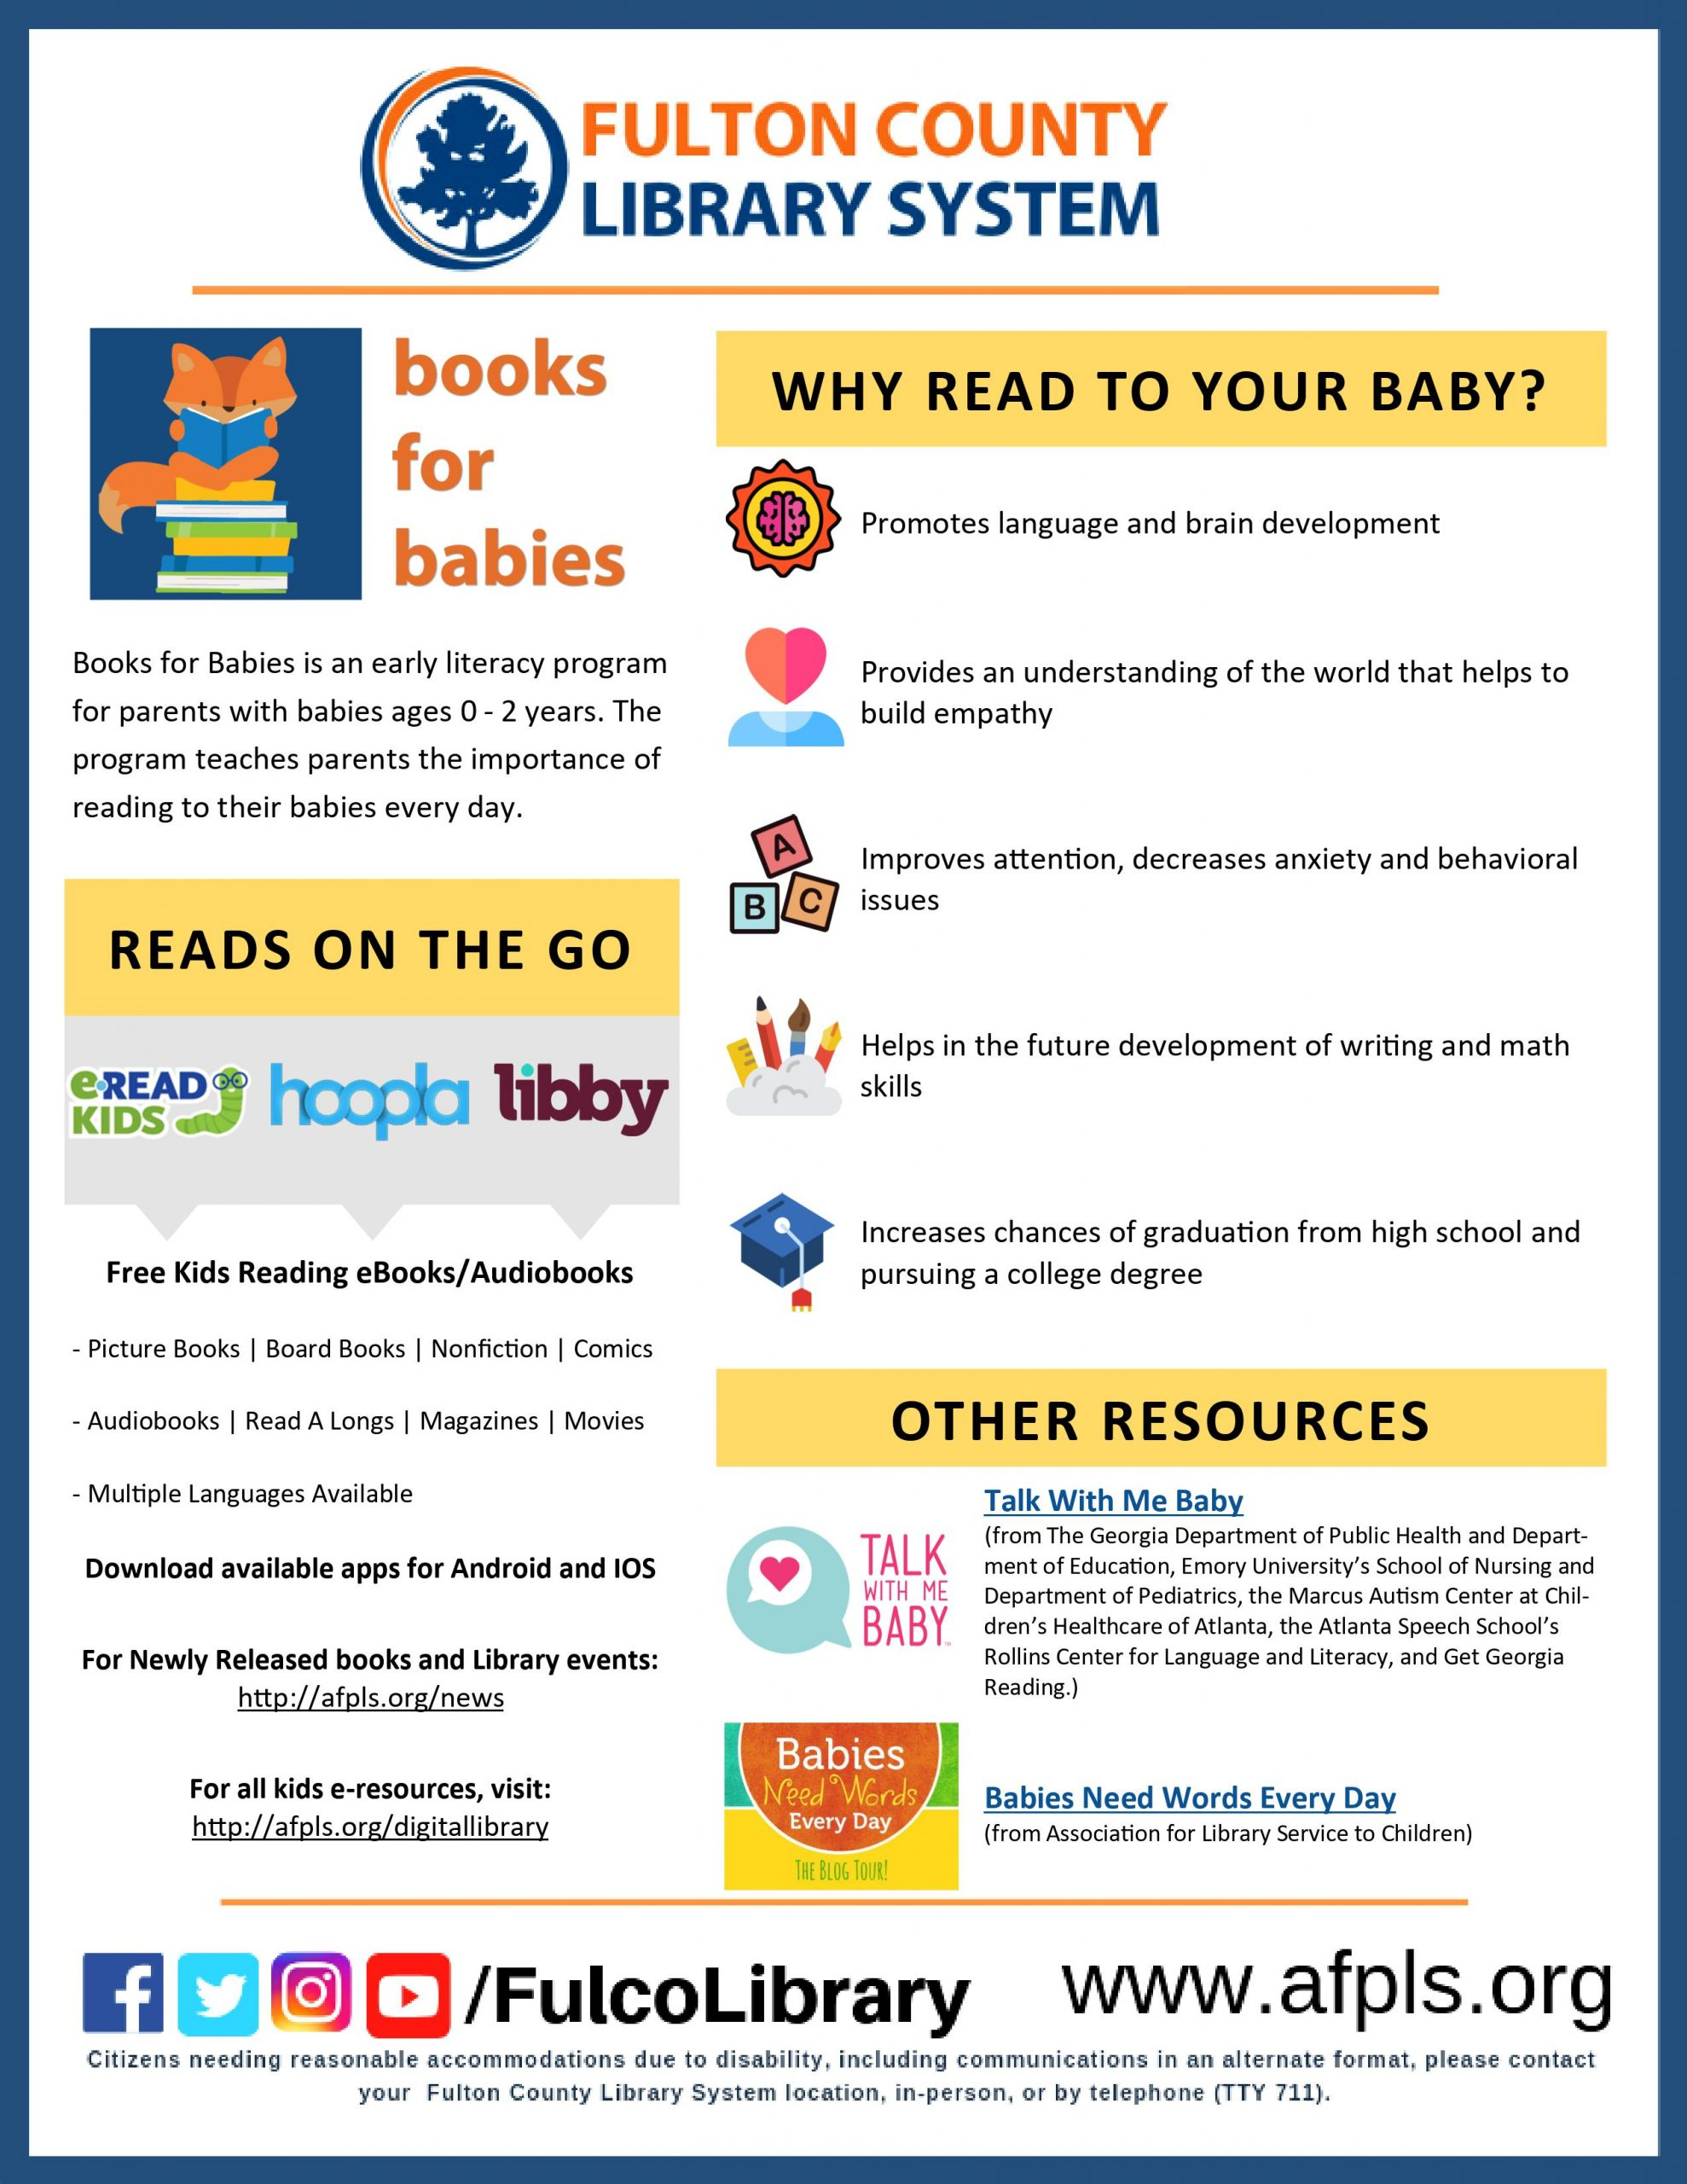 Books for Babies Flyer Image